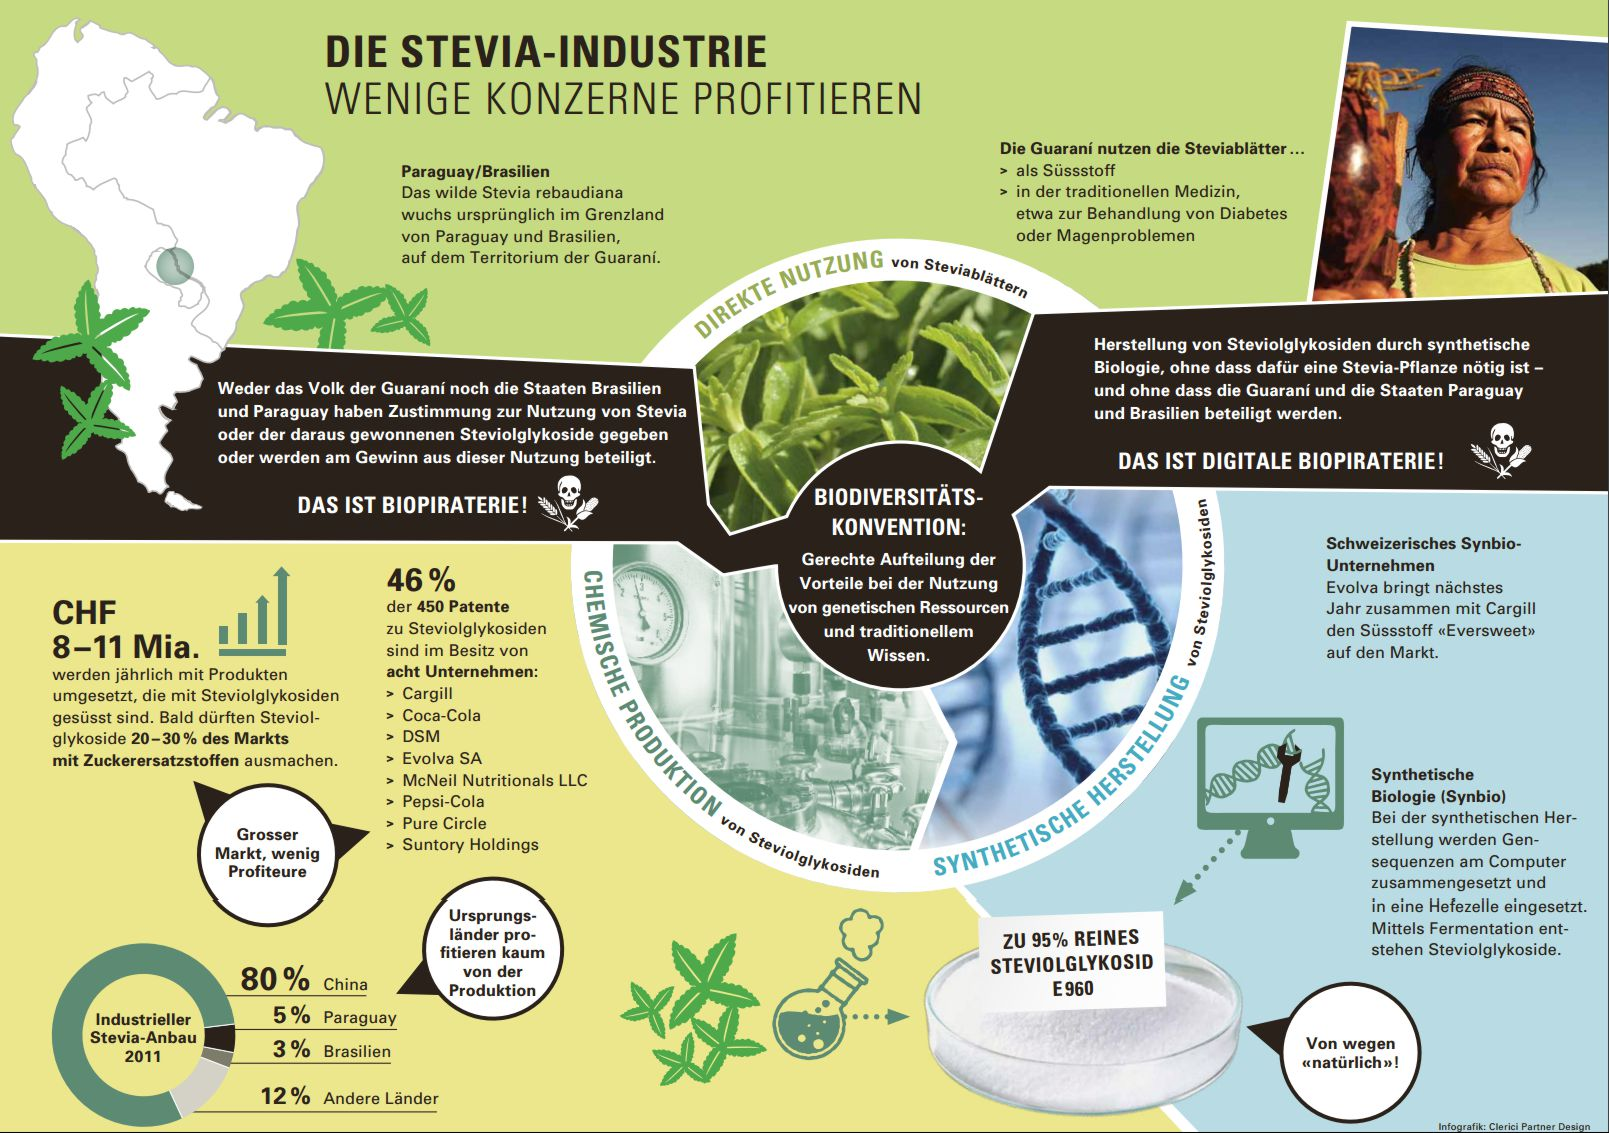 https://www.evb.ch/fileadmin/files/documents/Biodiversitaet/5957-5_EvB_infografik_stevia_web_D_2015-11-05_def-web.pdf